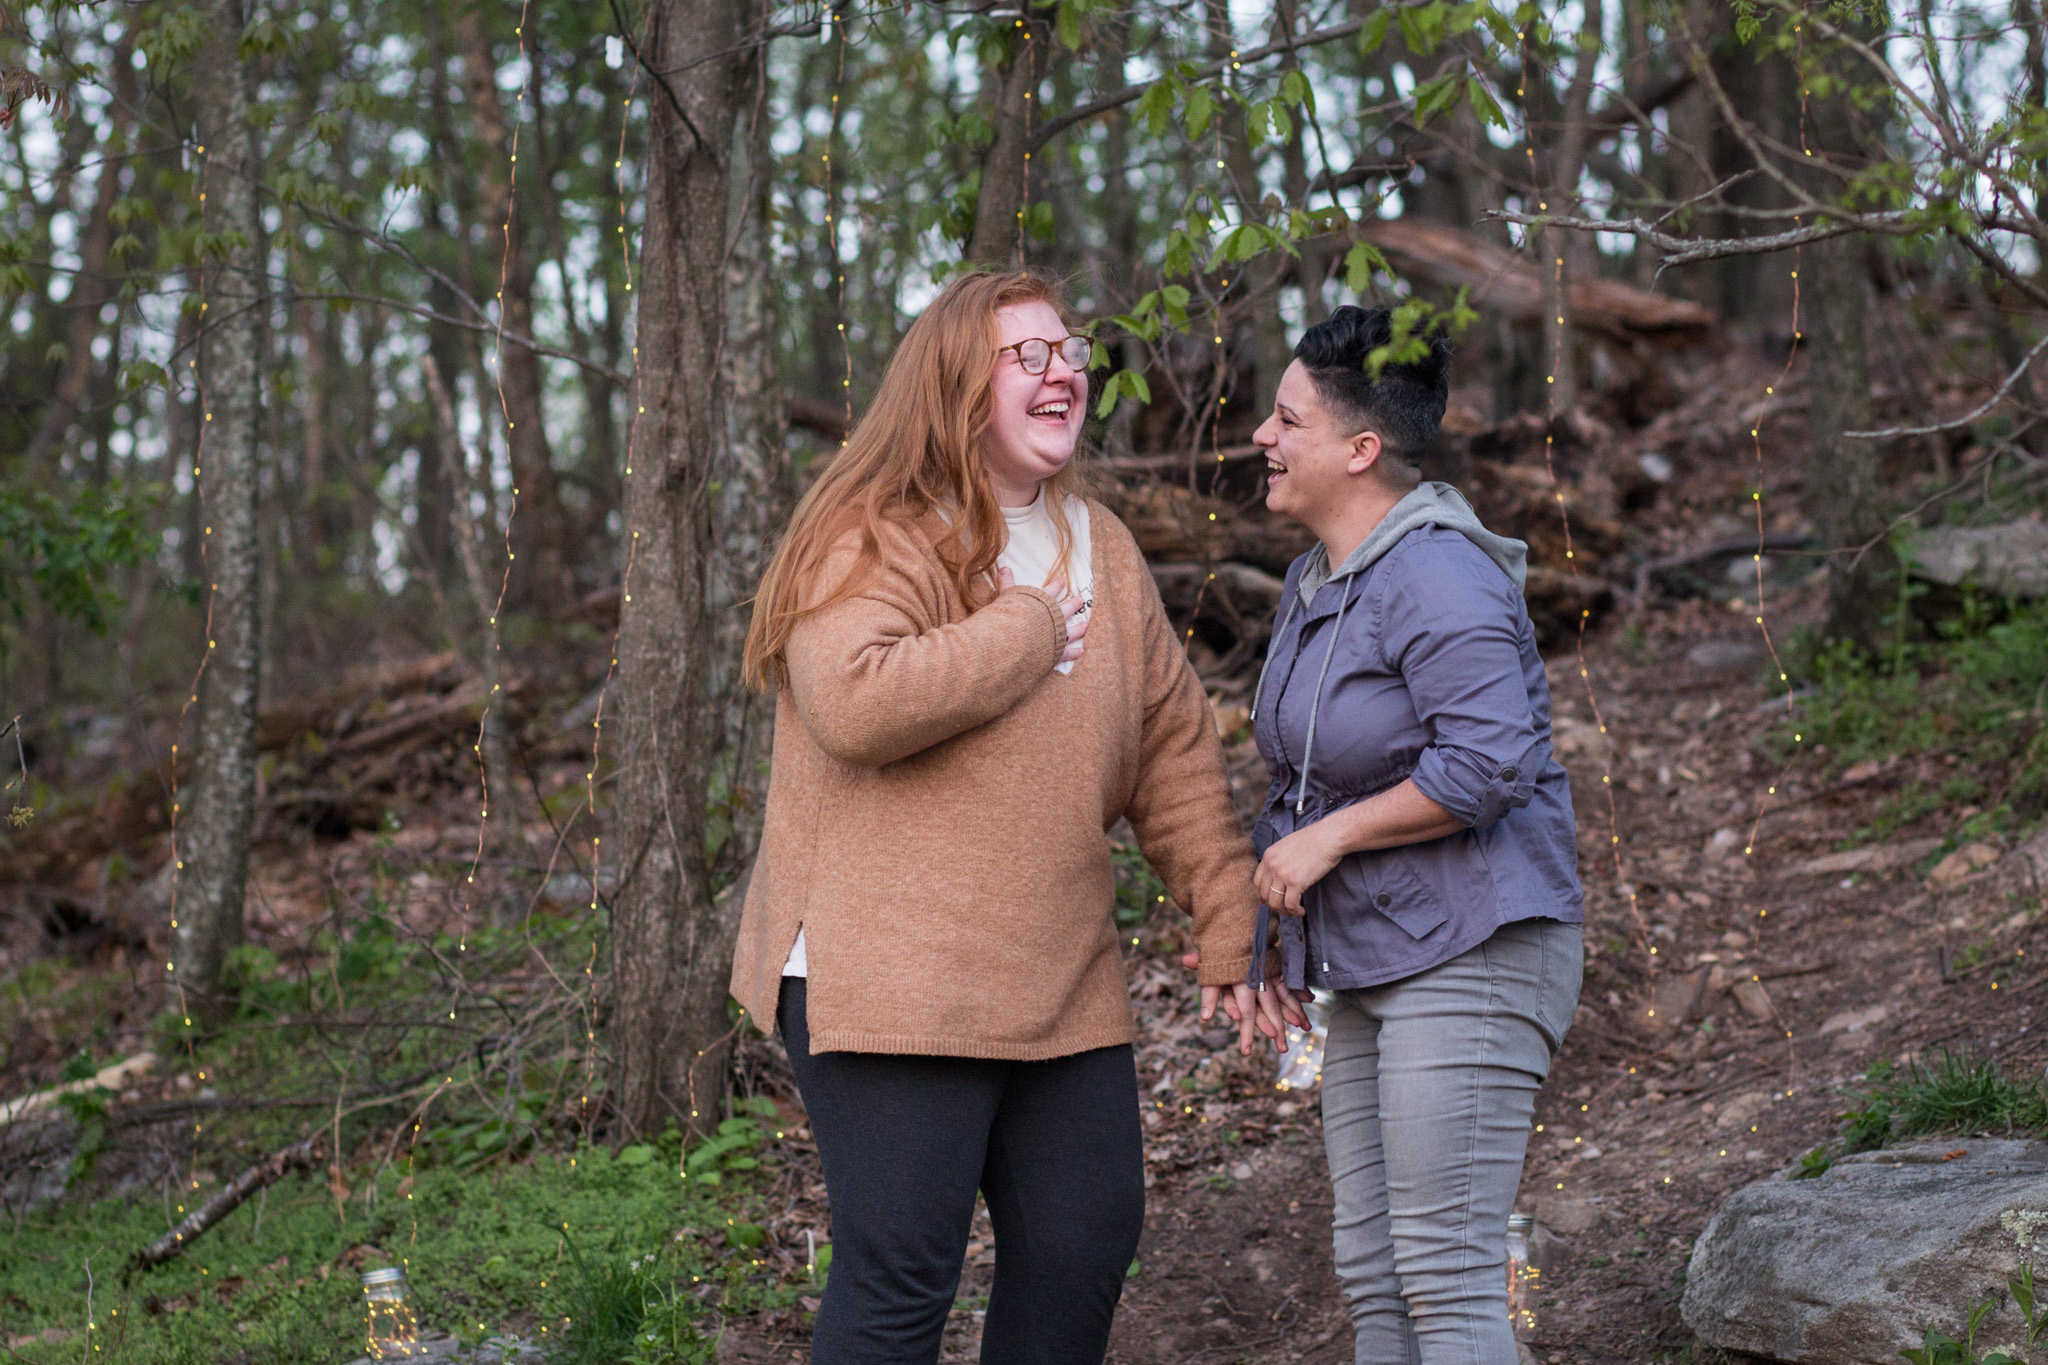 LightCreative_201904_AlexanBecky_Raleigh_Proposal_Photography_017_blog.jpg